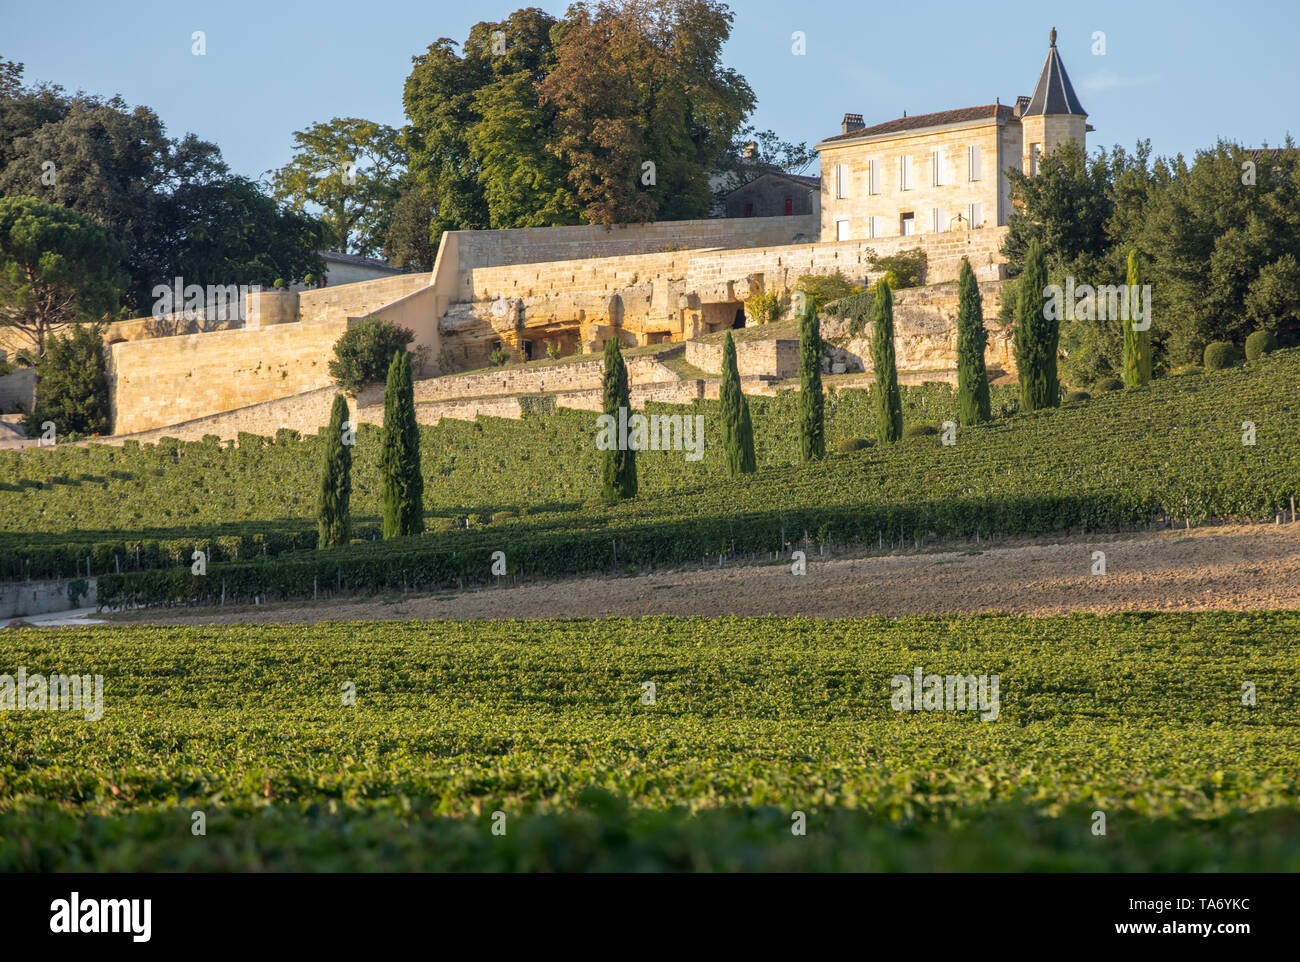 Ripe red grapes on rows of vines in vienyard of Clos La Madeleine  before the wine harvest in Saint Emilion region. France - Stock Image